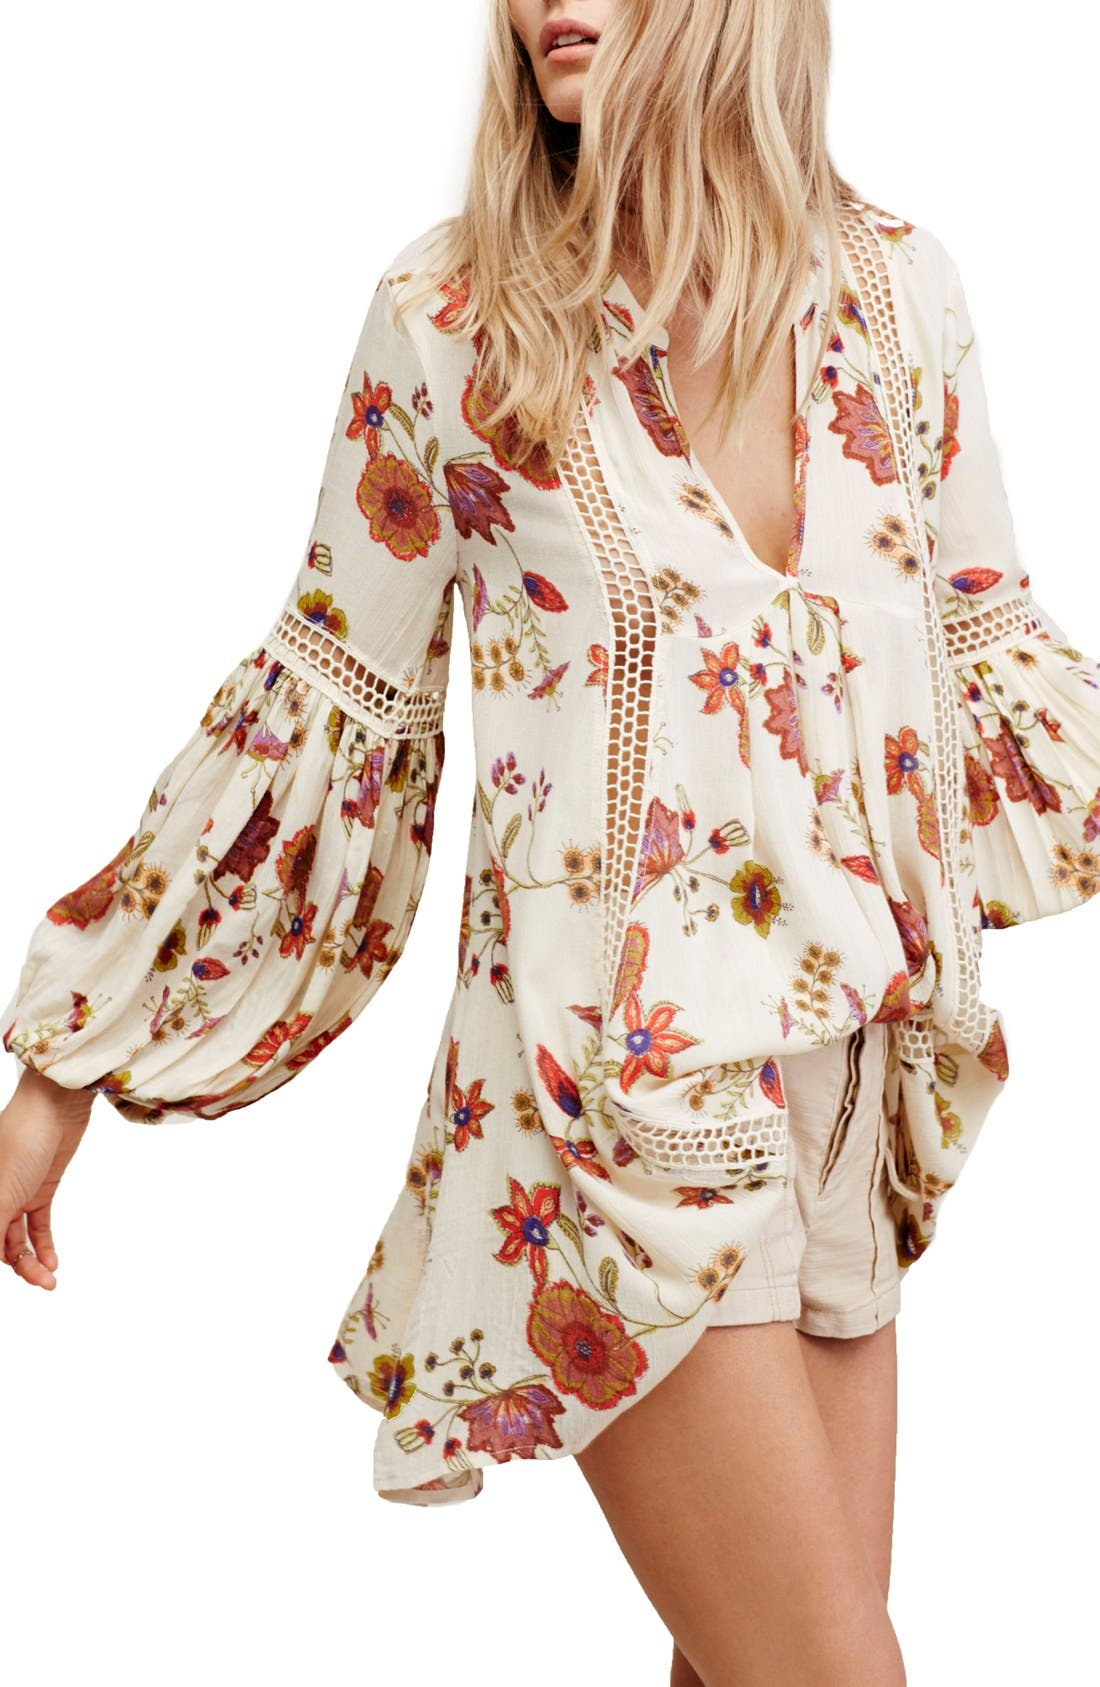 Alternate Image 1 Selected - Free People Just the Two of Us Floral Tunic